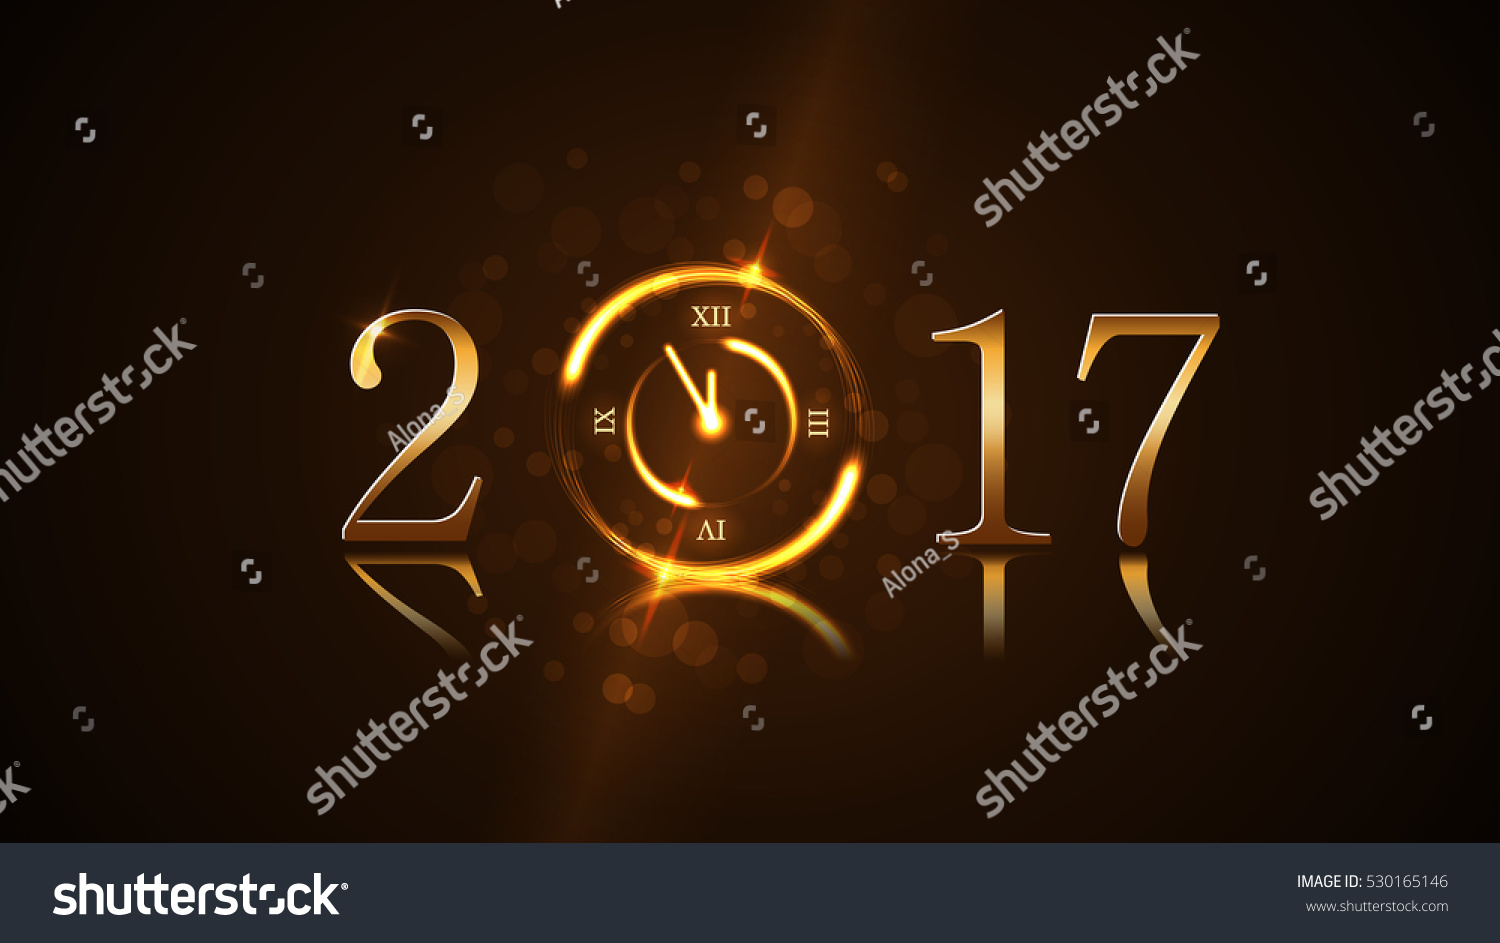 happy new year card background magic gold clock countdown golden numbers 2018 christmas and new year night glitter clock design decoration